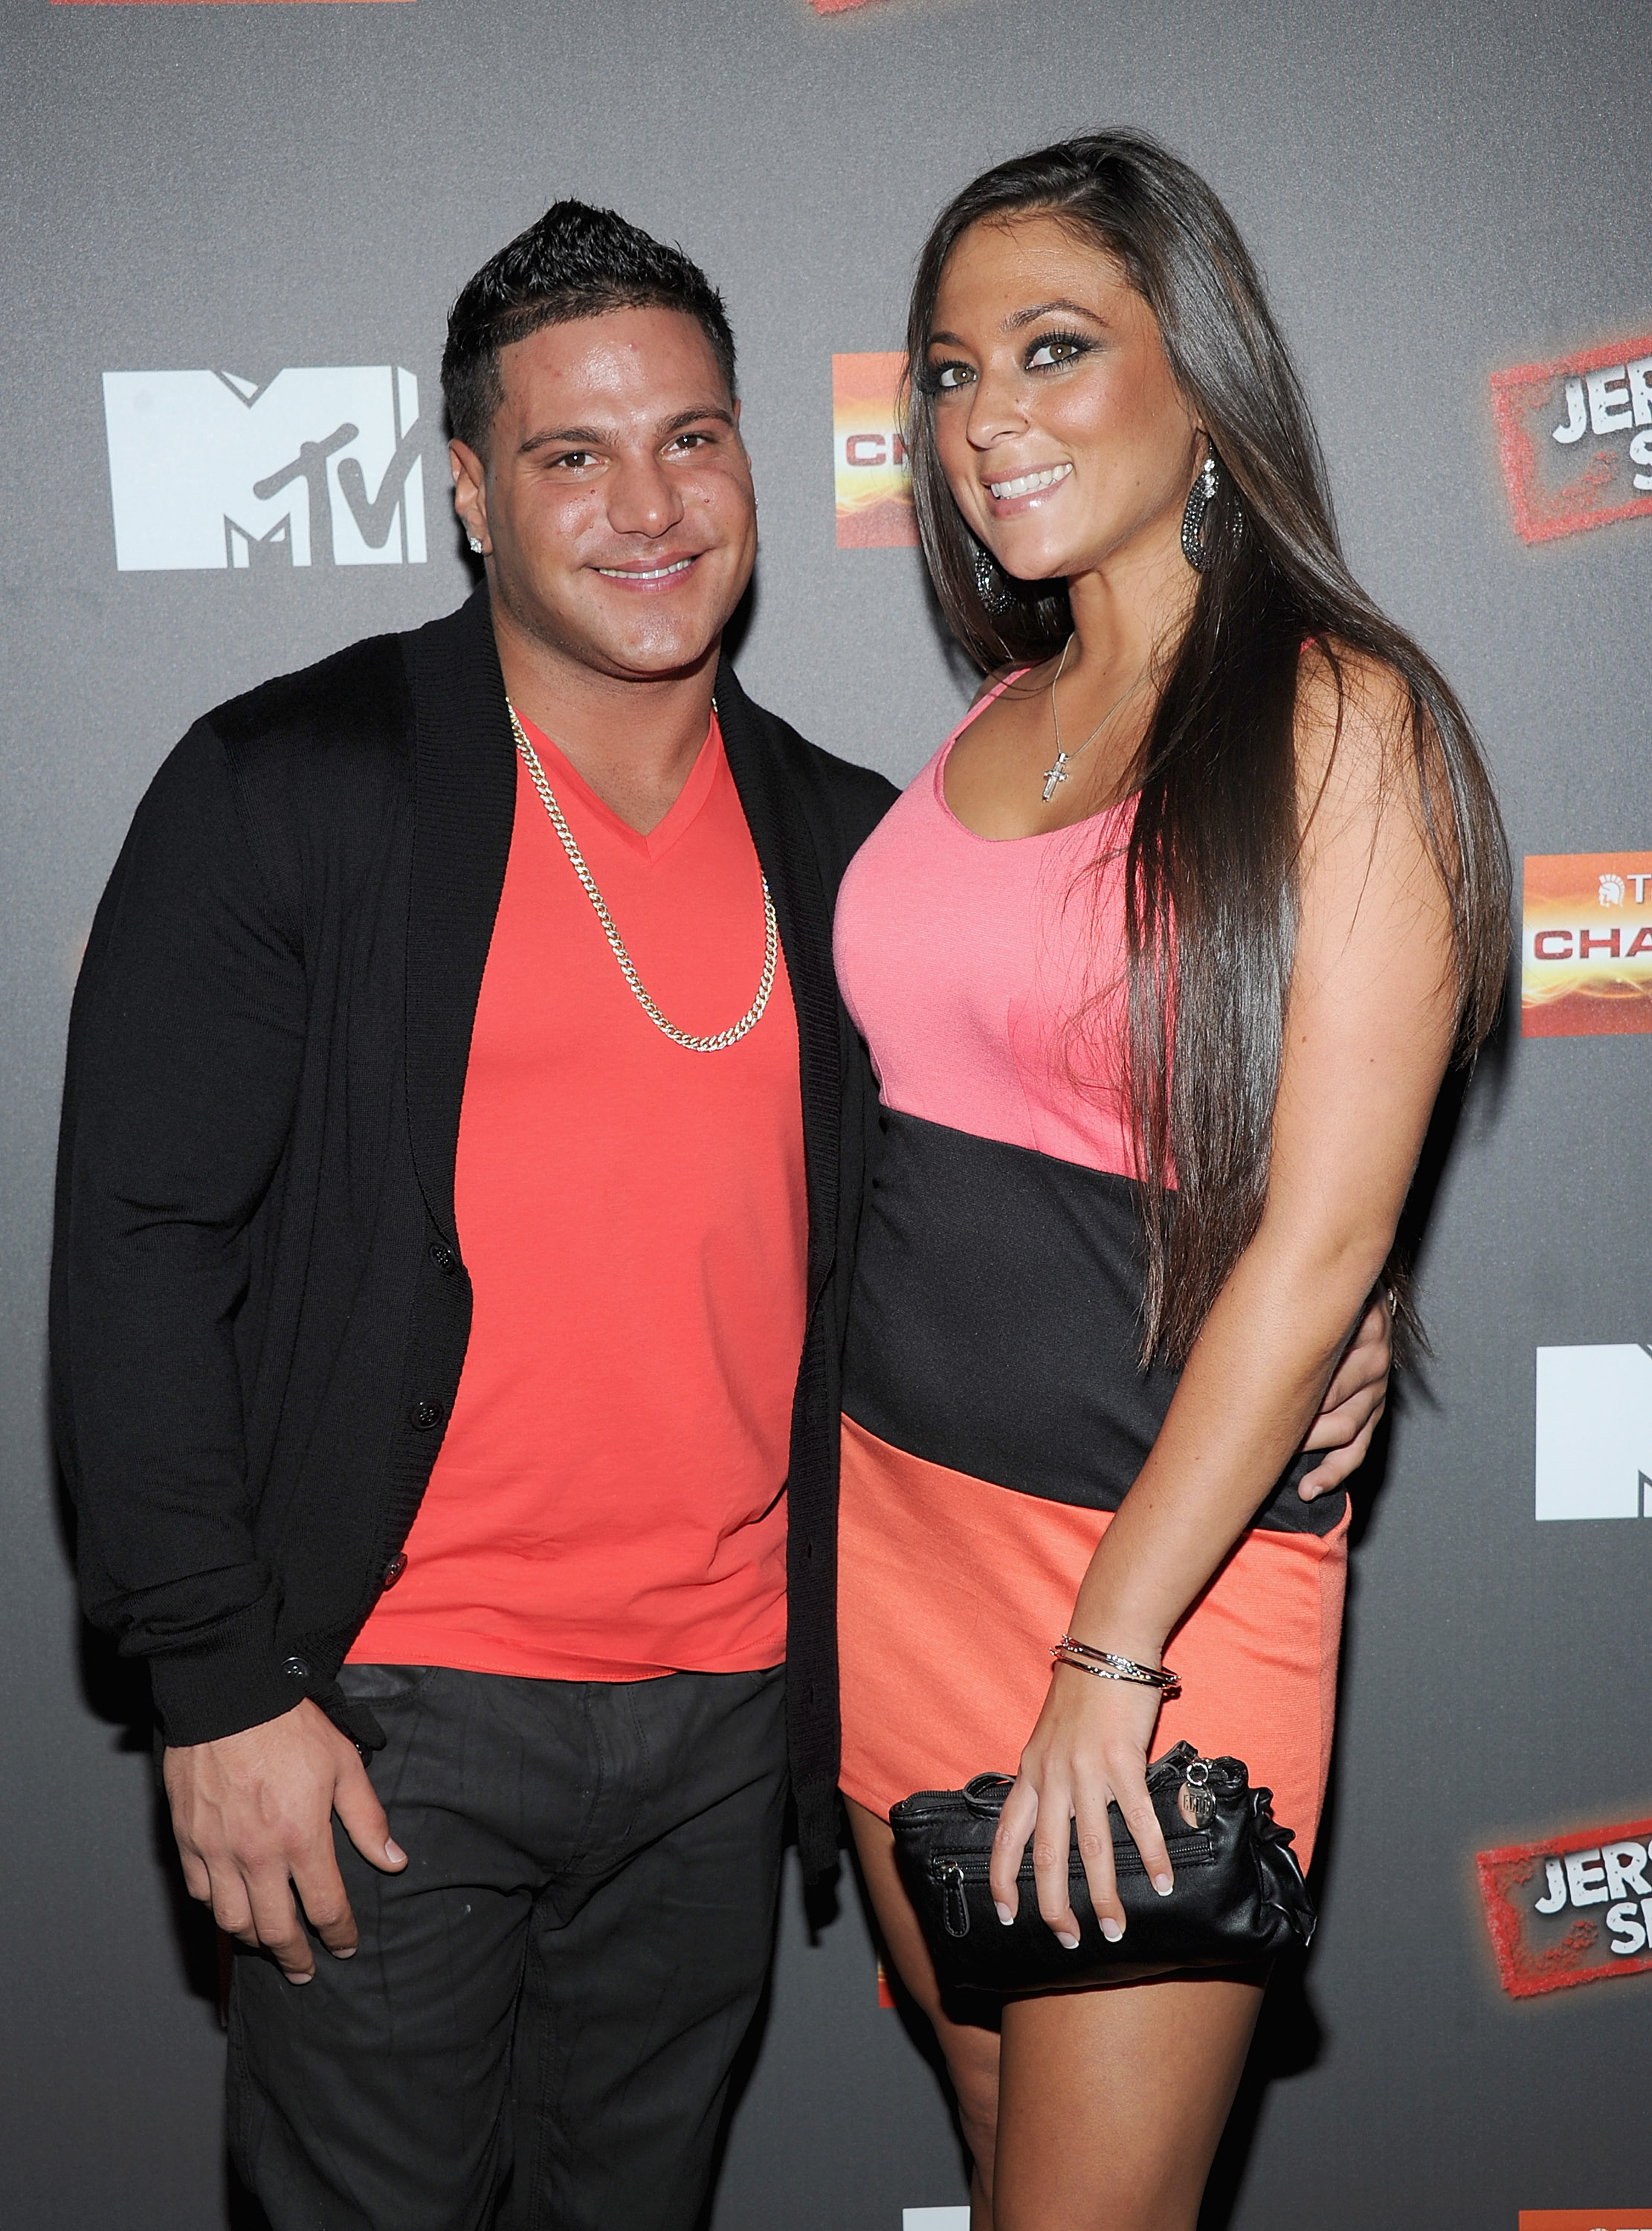 Are sammi and ronnie from jersey shore still dating